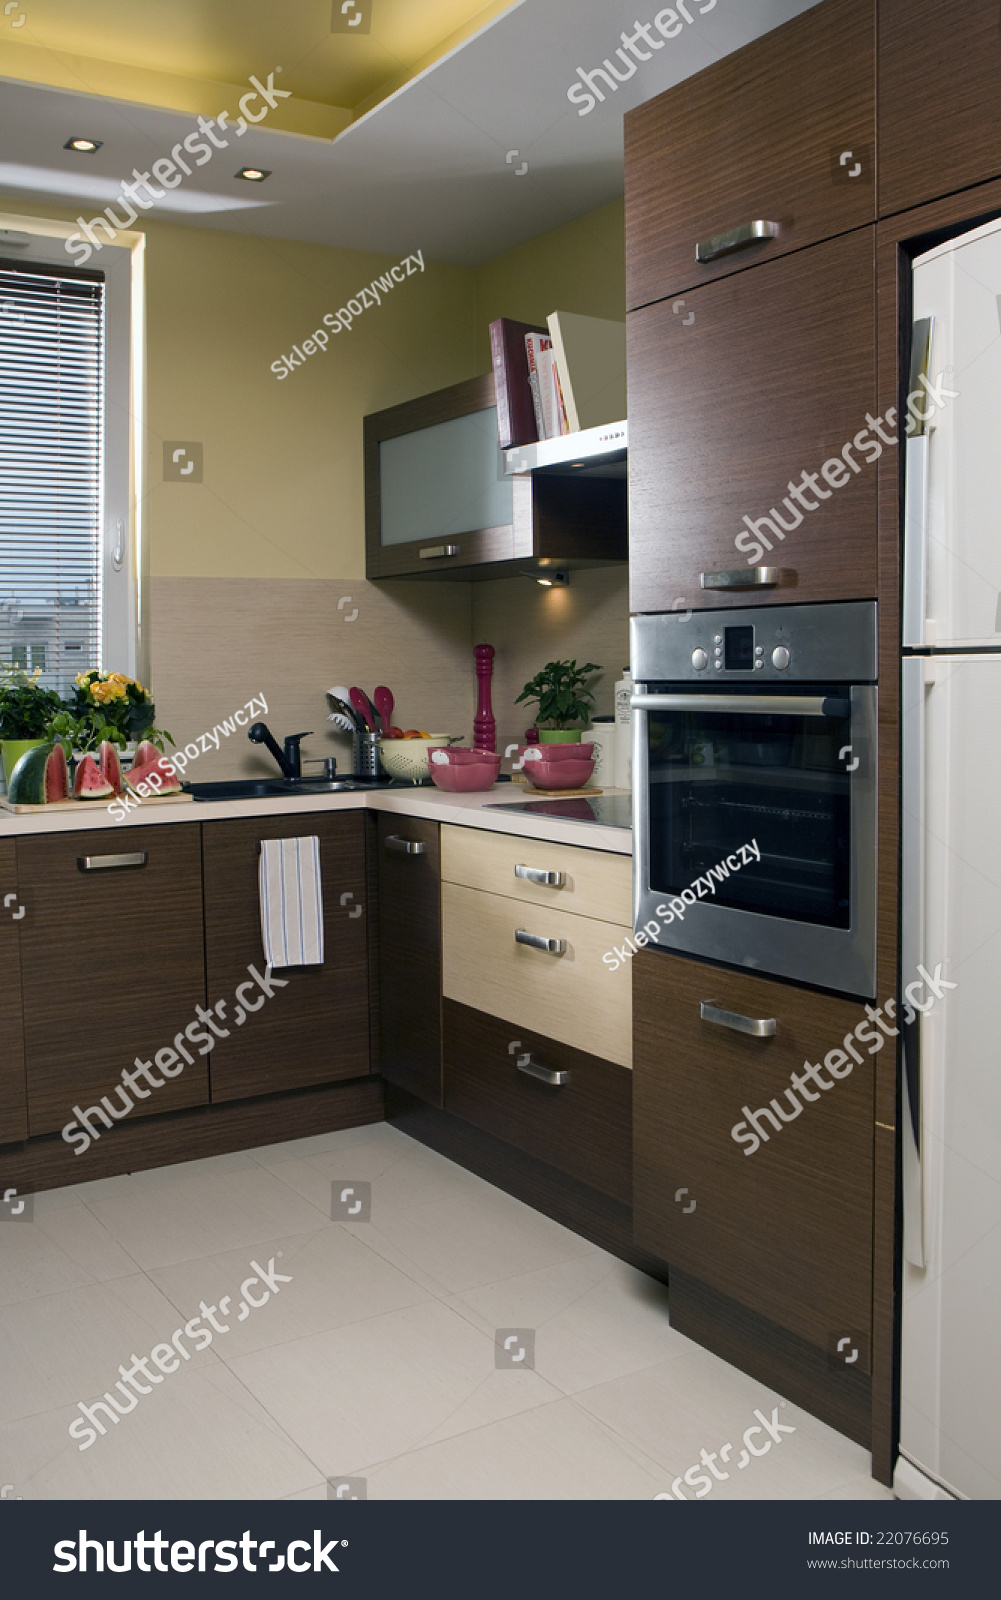 Small Kitchen In The Flat Stock Photo 22076695 Shutterstock